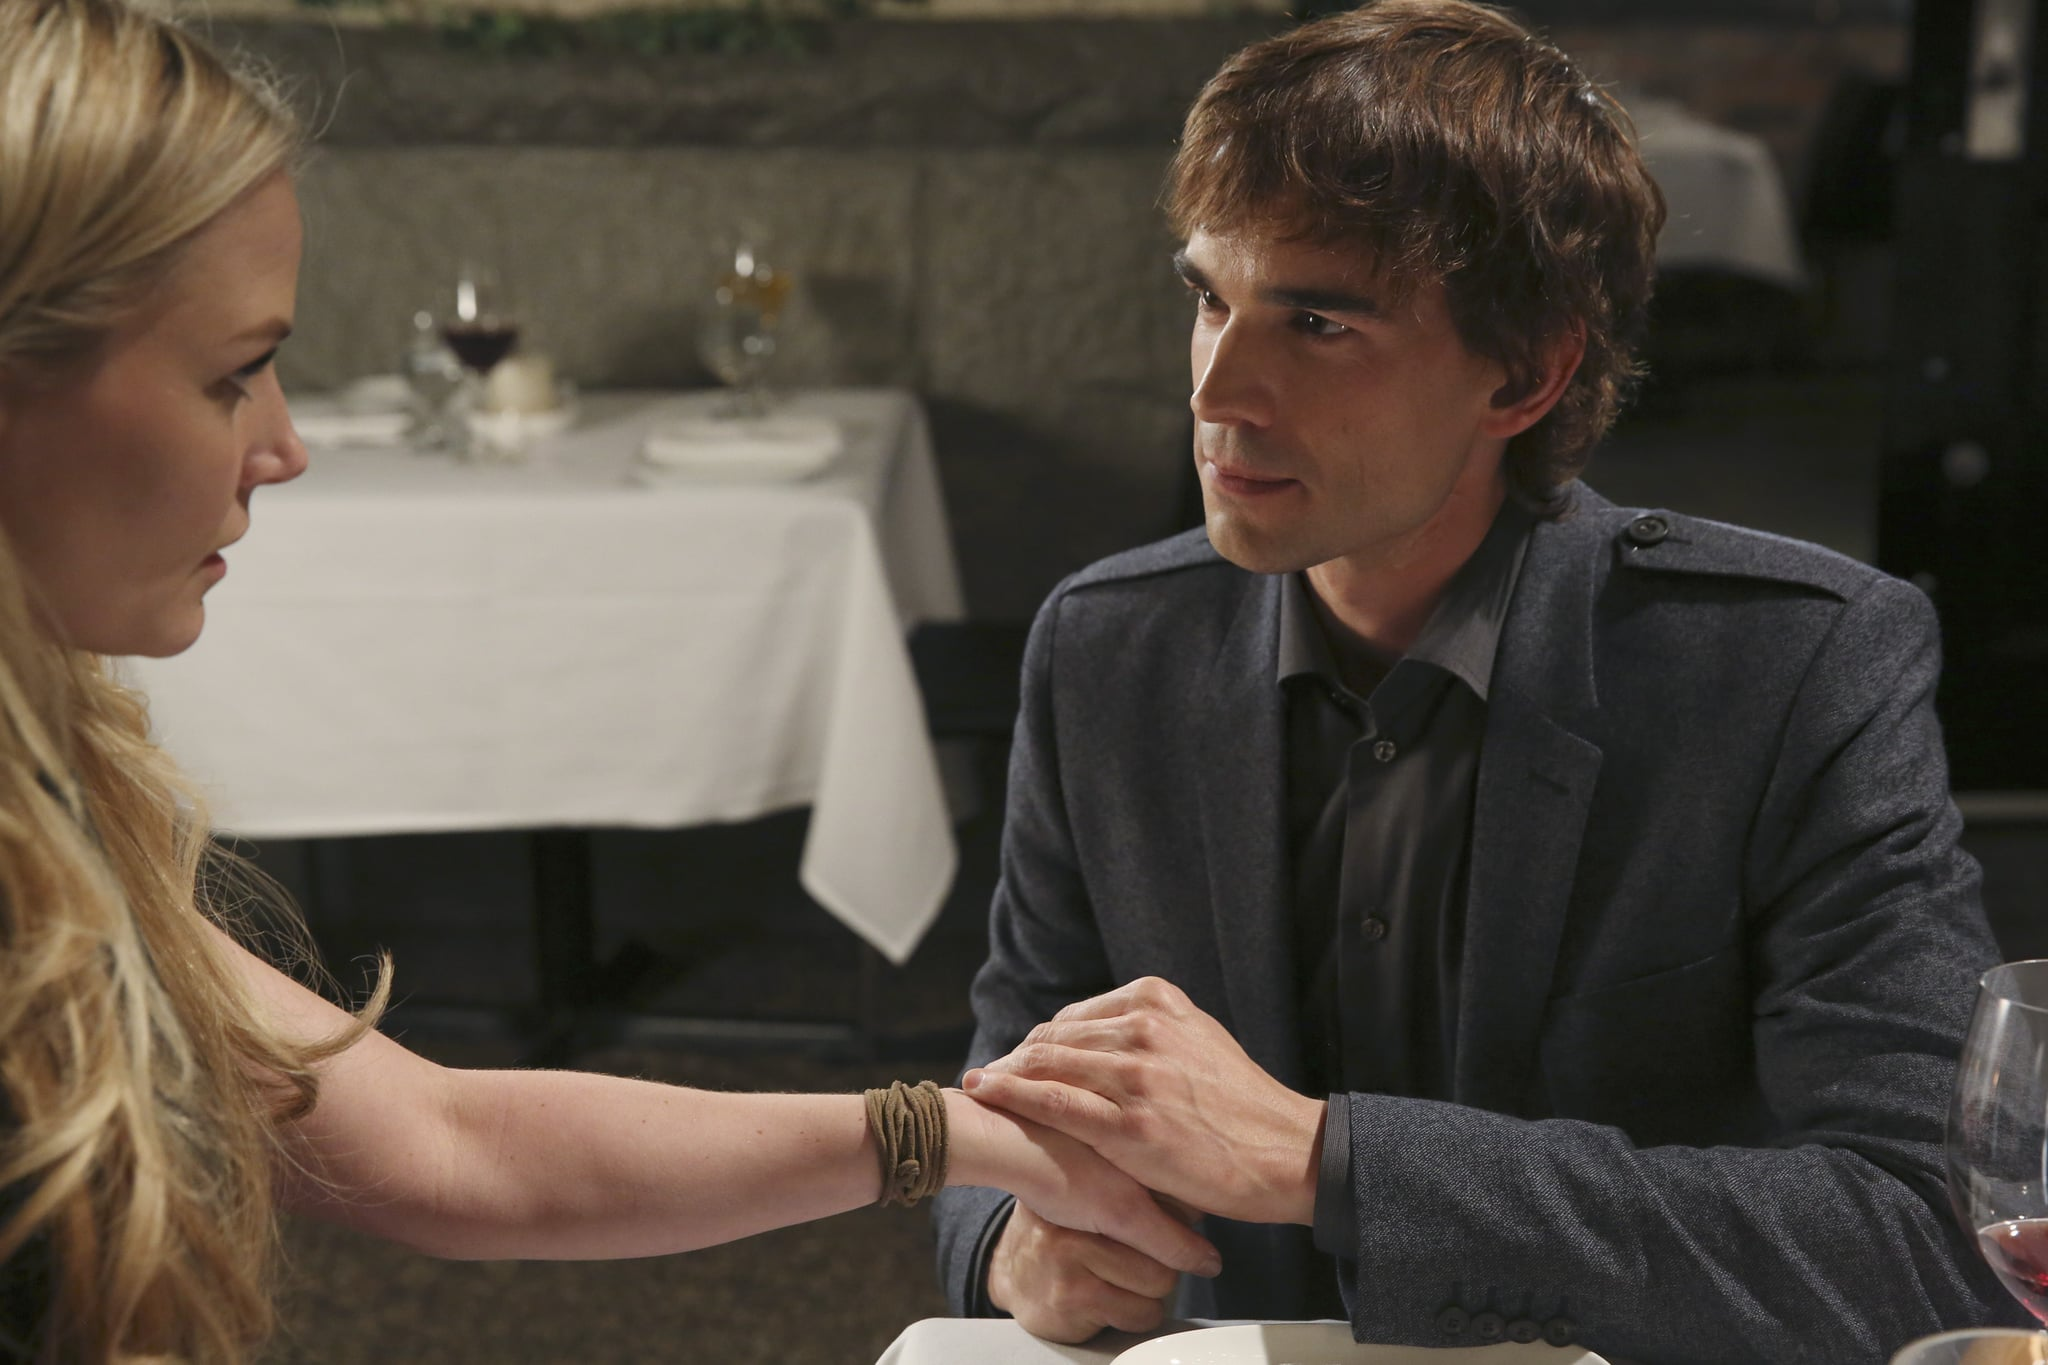 Christopher Gorham guest-stars as Emma's date.